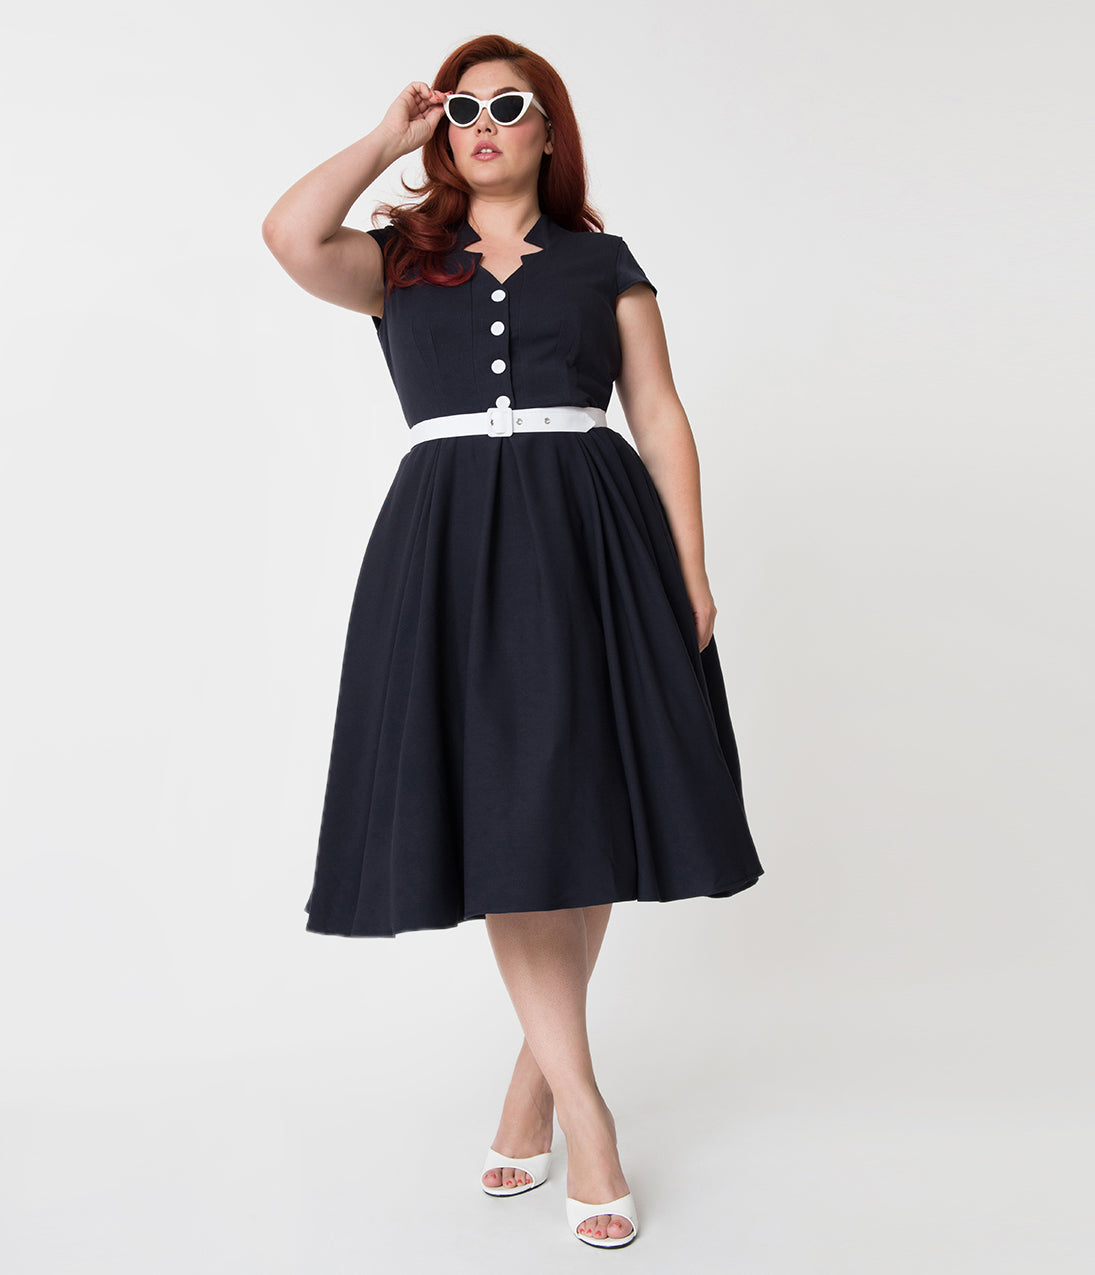 Sailor Dresses, Nautical Dress, Pin Up & WW2 Dresses Miss Candy Floss Plus Size 1950S Style Navy Blue Alessia-Lee Swing Dress $118.00 AT vintagedancer.com